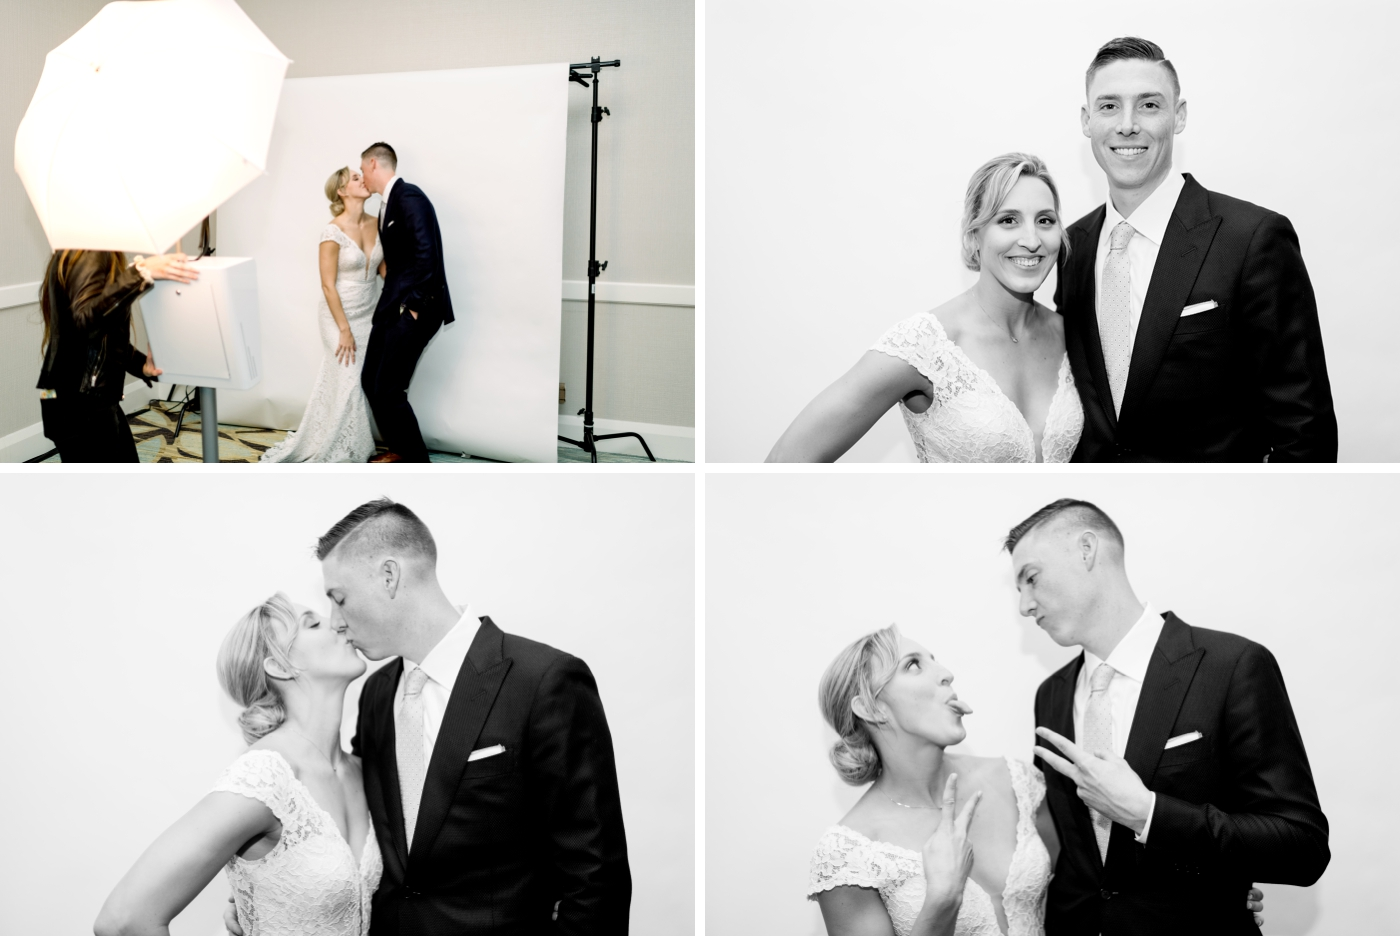 photo booth wedding orlando